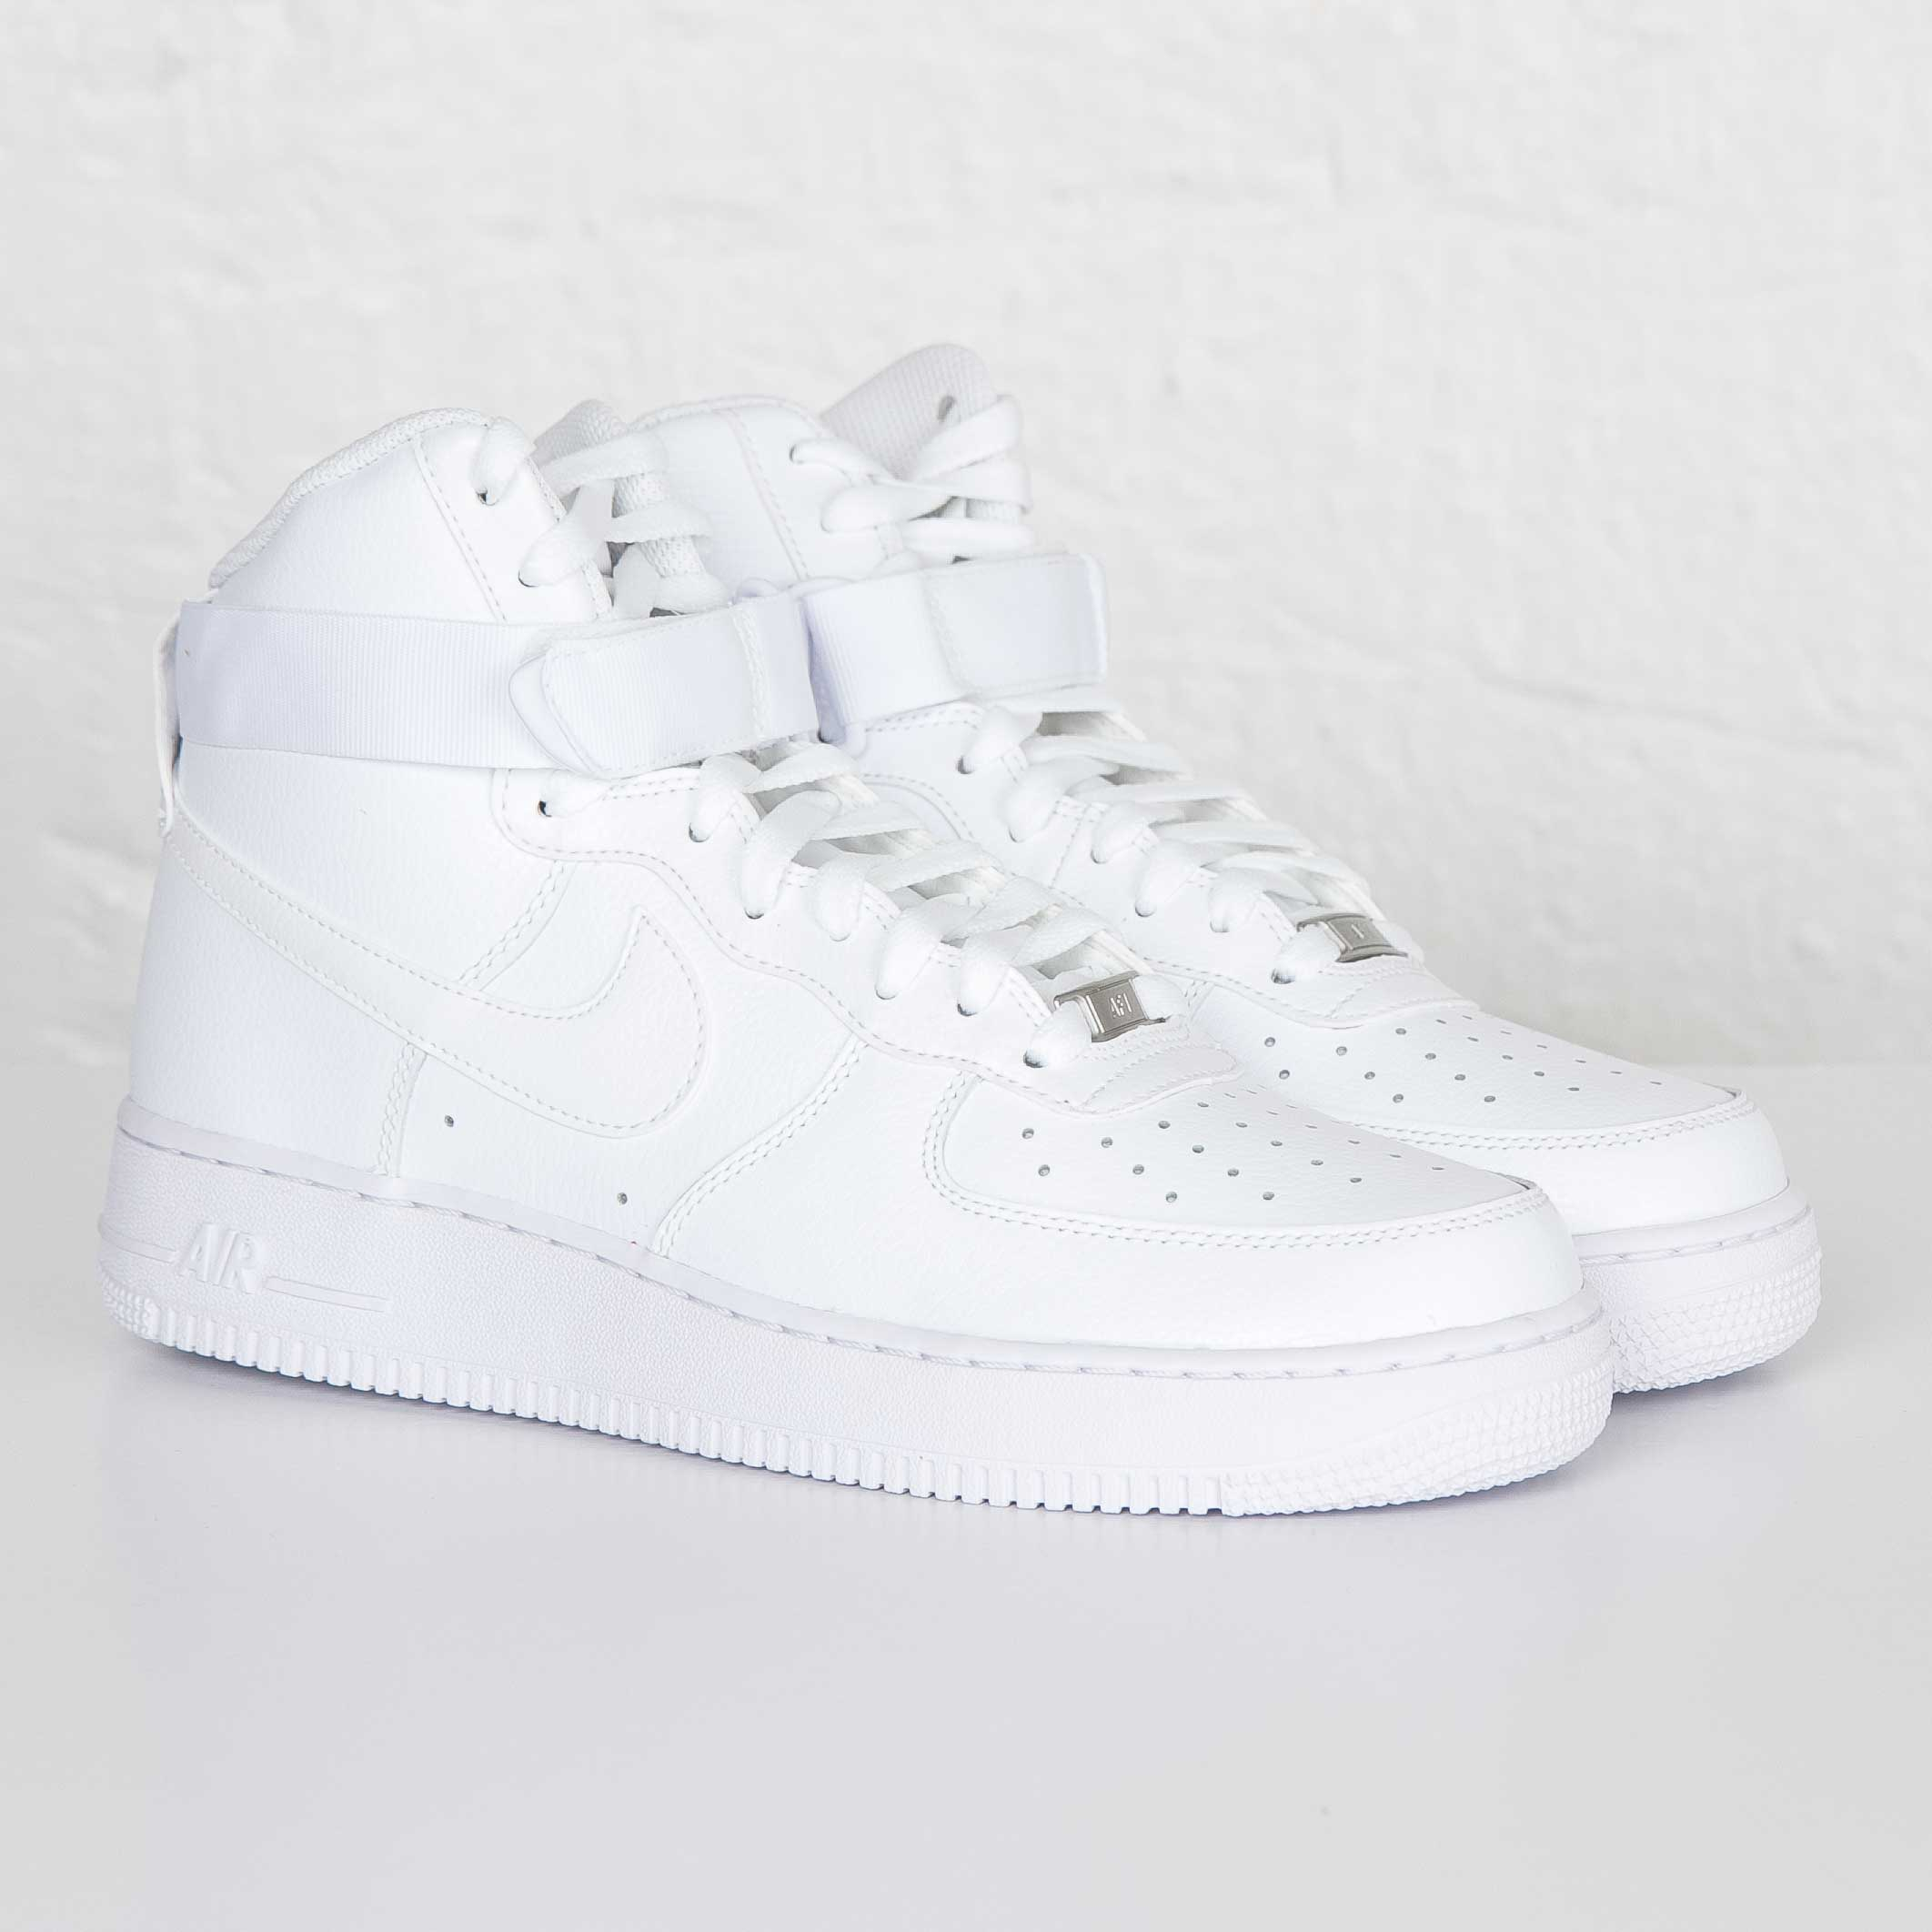 promo code cef8c 9bb68 Nike Air Force 1 High 07